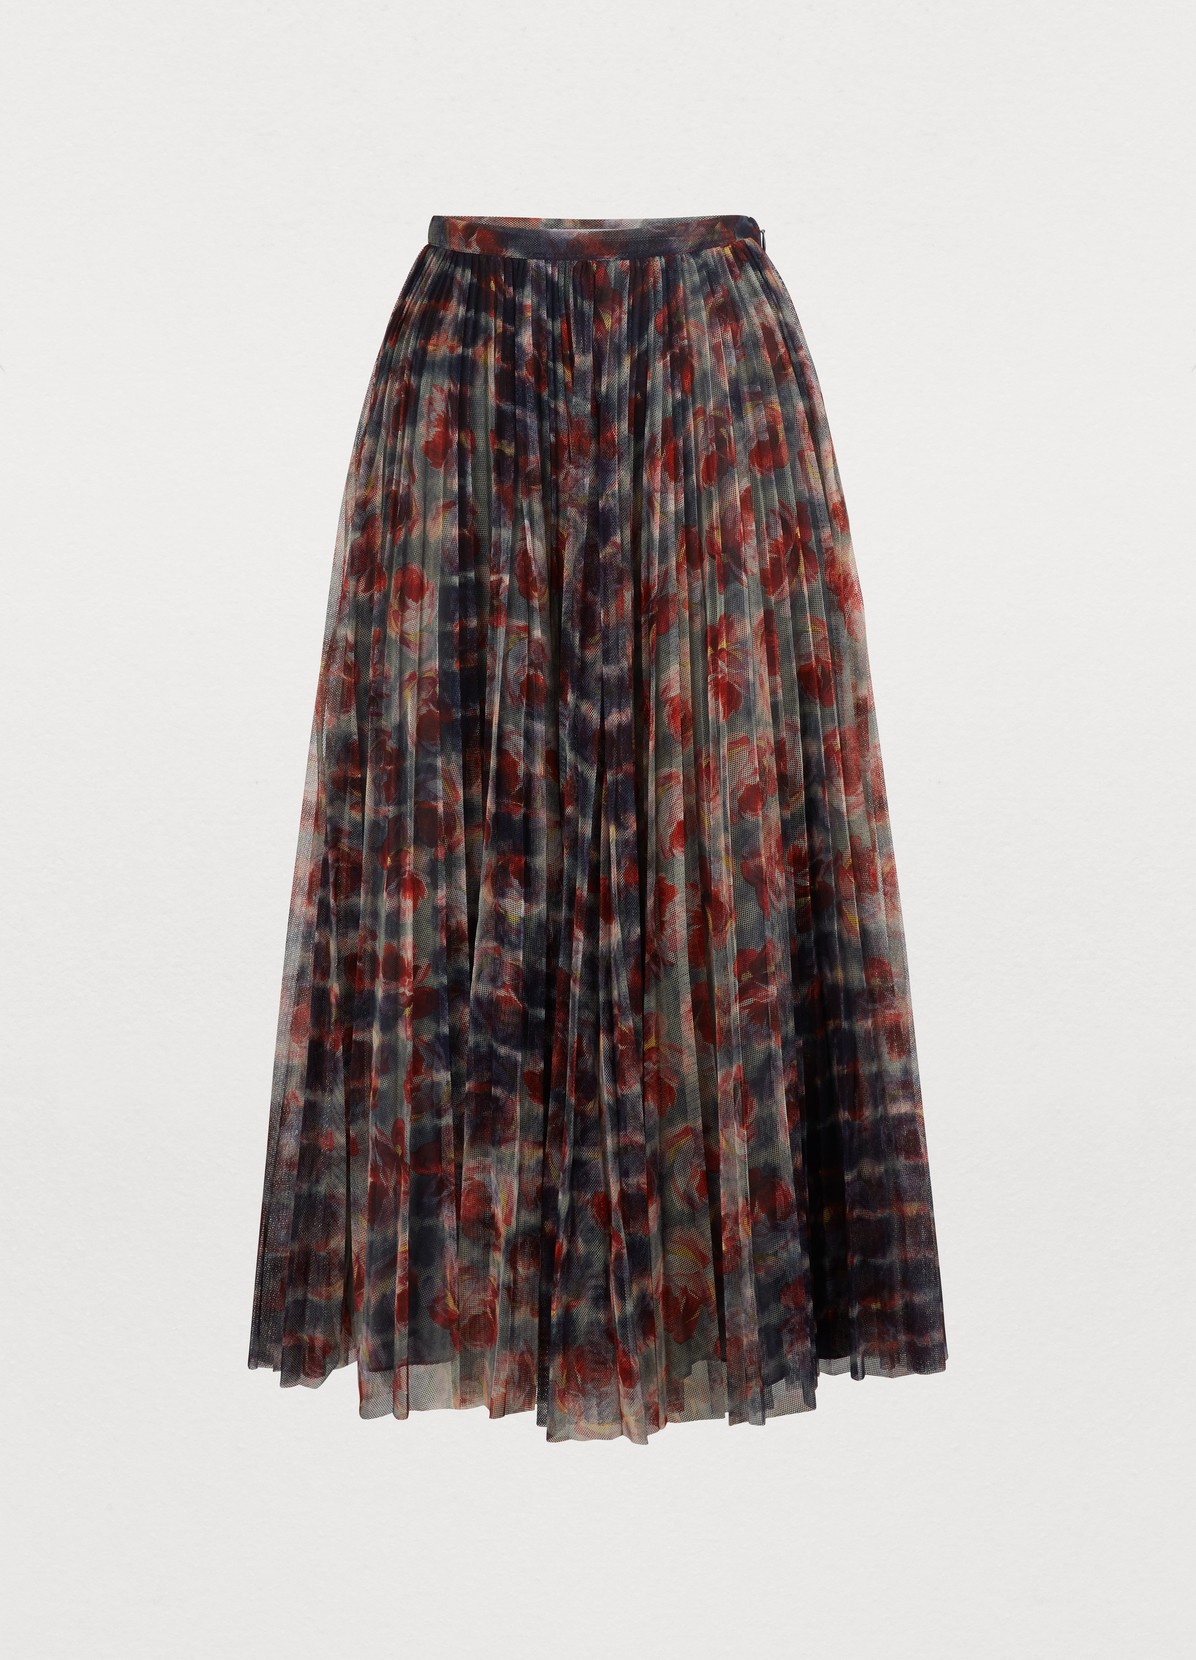 Dior Cotton Tulle Skirt